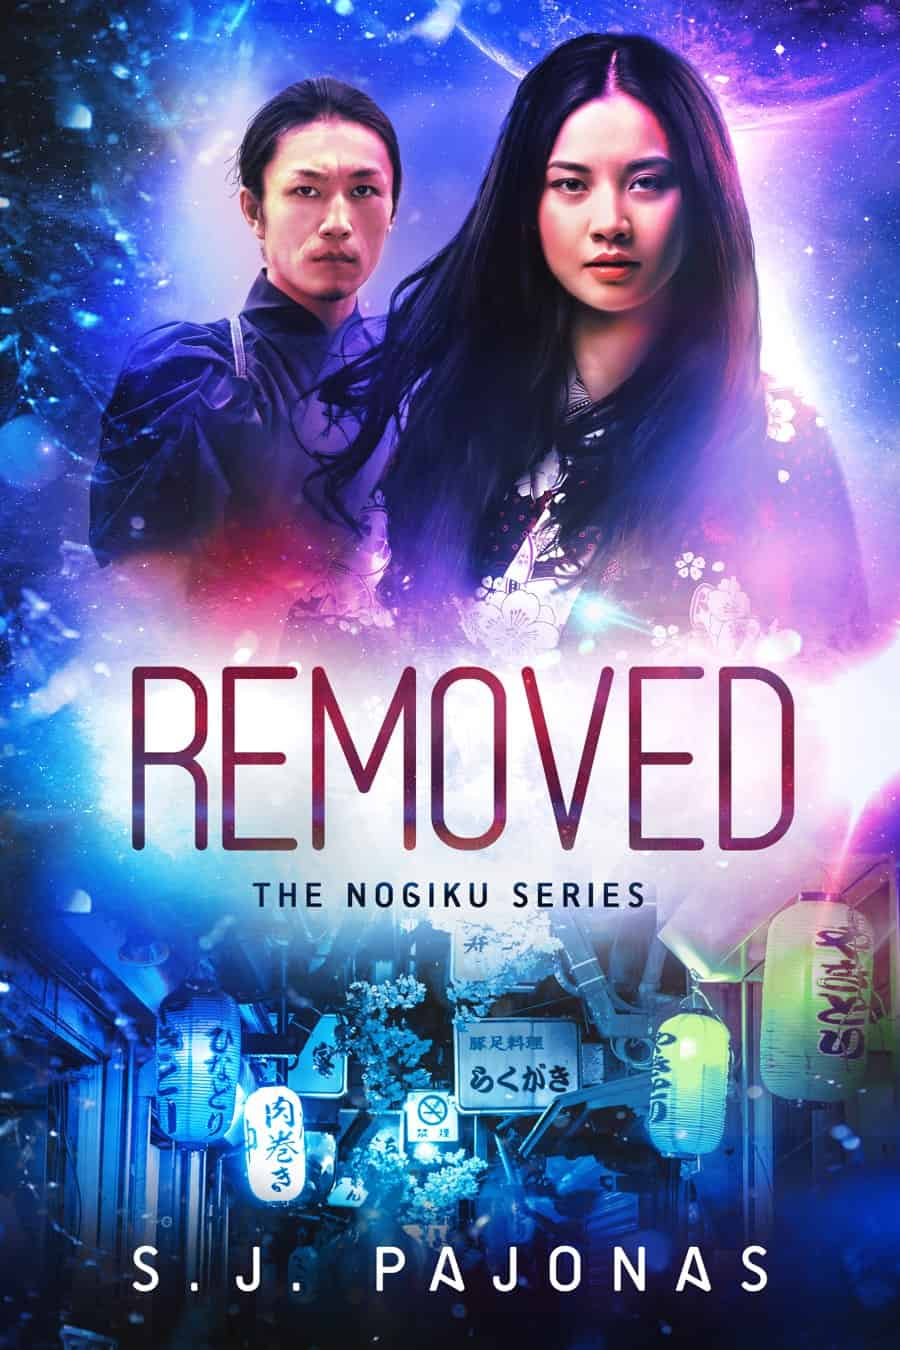 REMOVED is free for 2019! Pick up this science fiction romance series starter and get sucked into the Nogiku universe with Sanaa and Jiro.